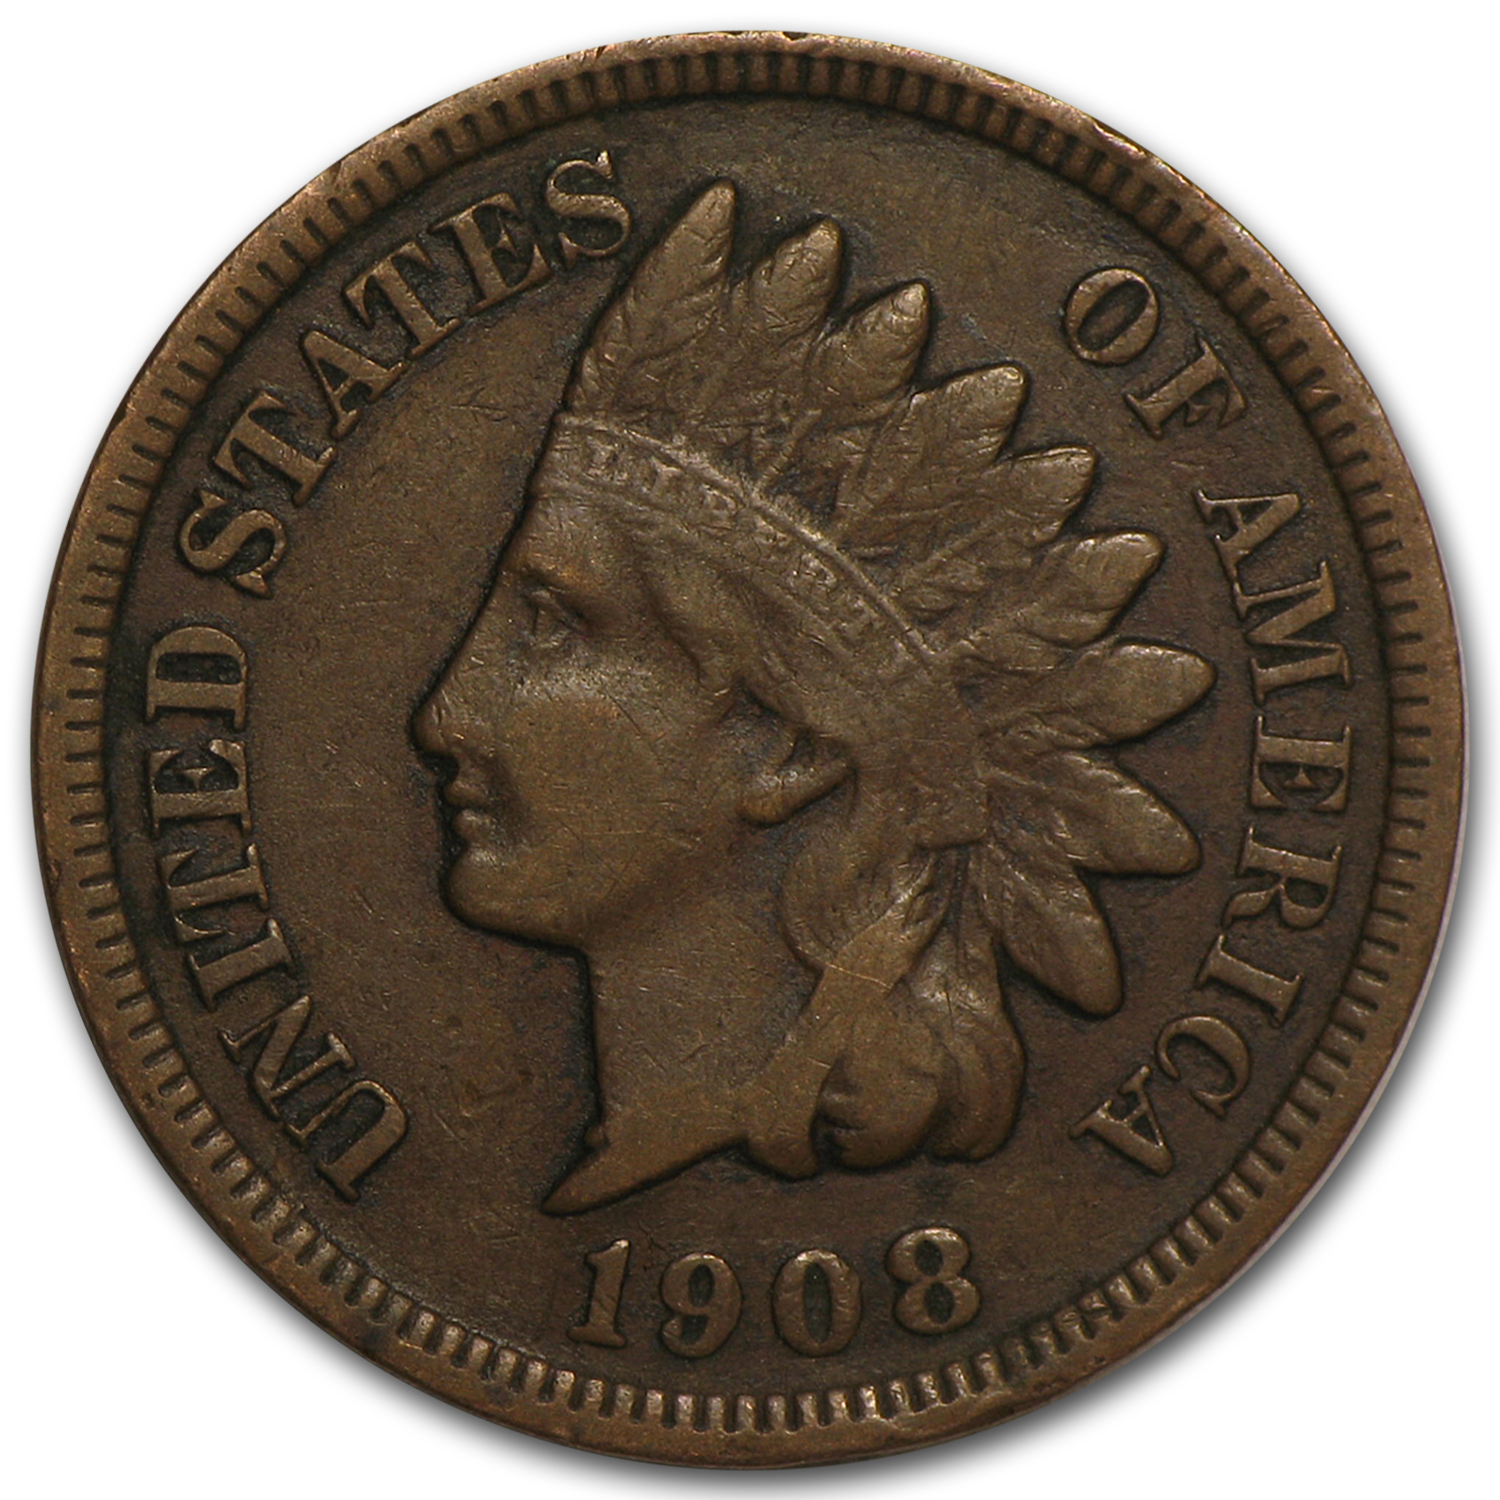 1908 S Indian Head Cent Vf Indian Head Cents 1859